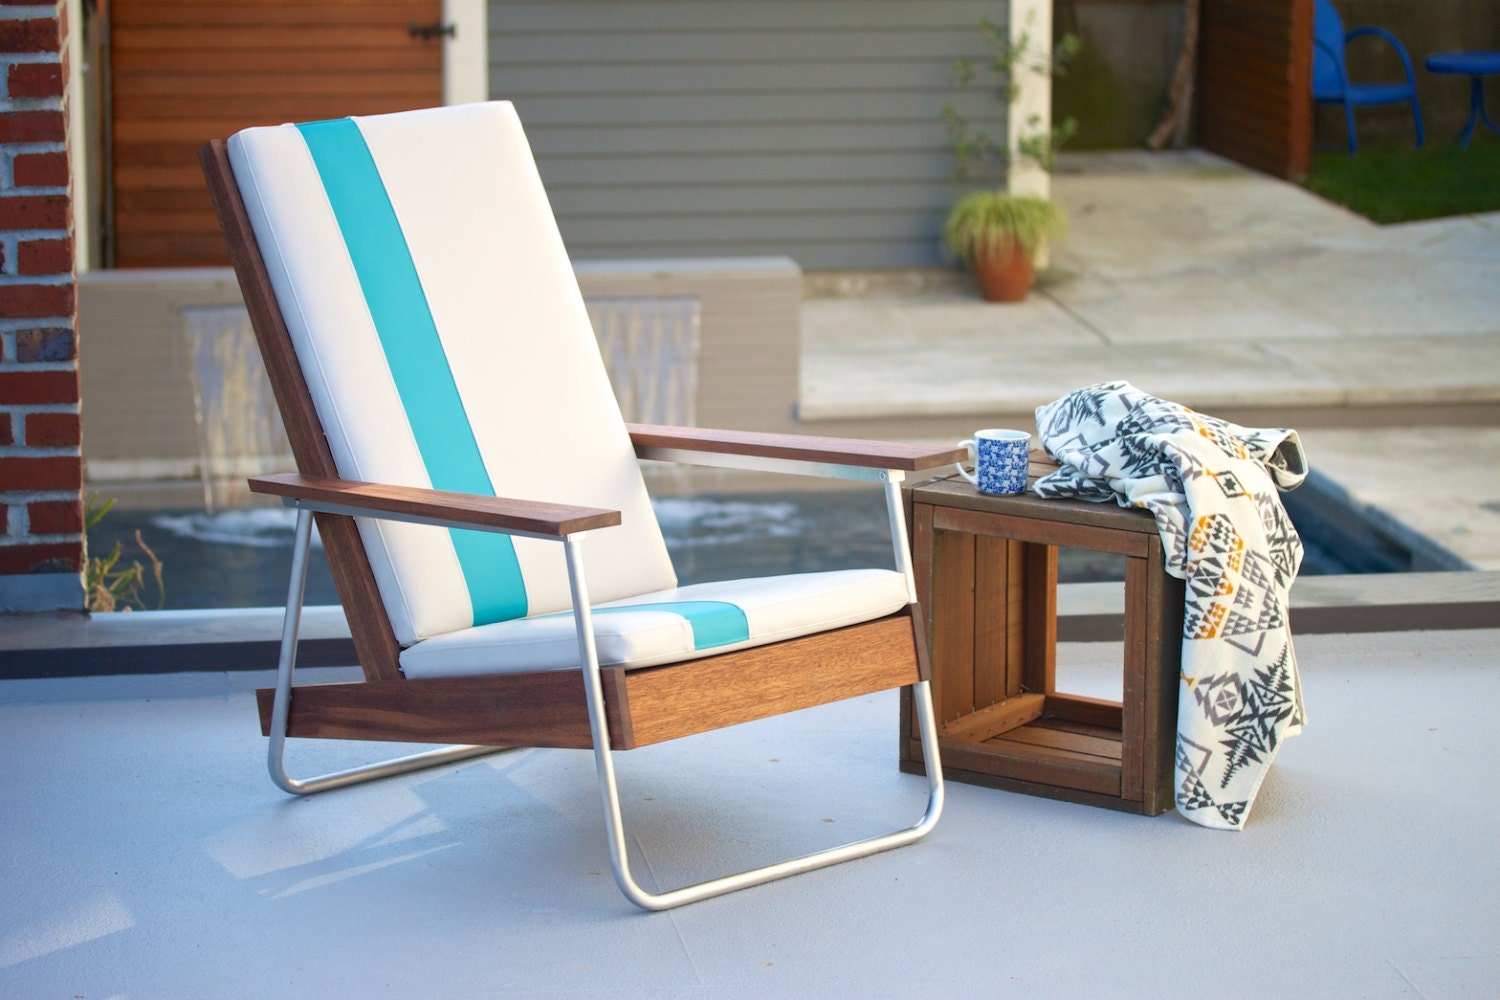 the belmont outdoor leisure chair. Black Bedroom Furniture Sets. Home Design Ideas